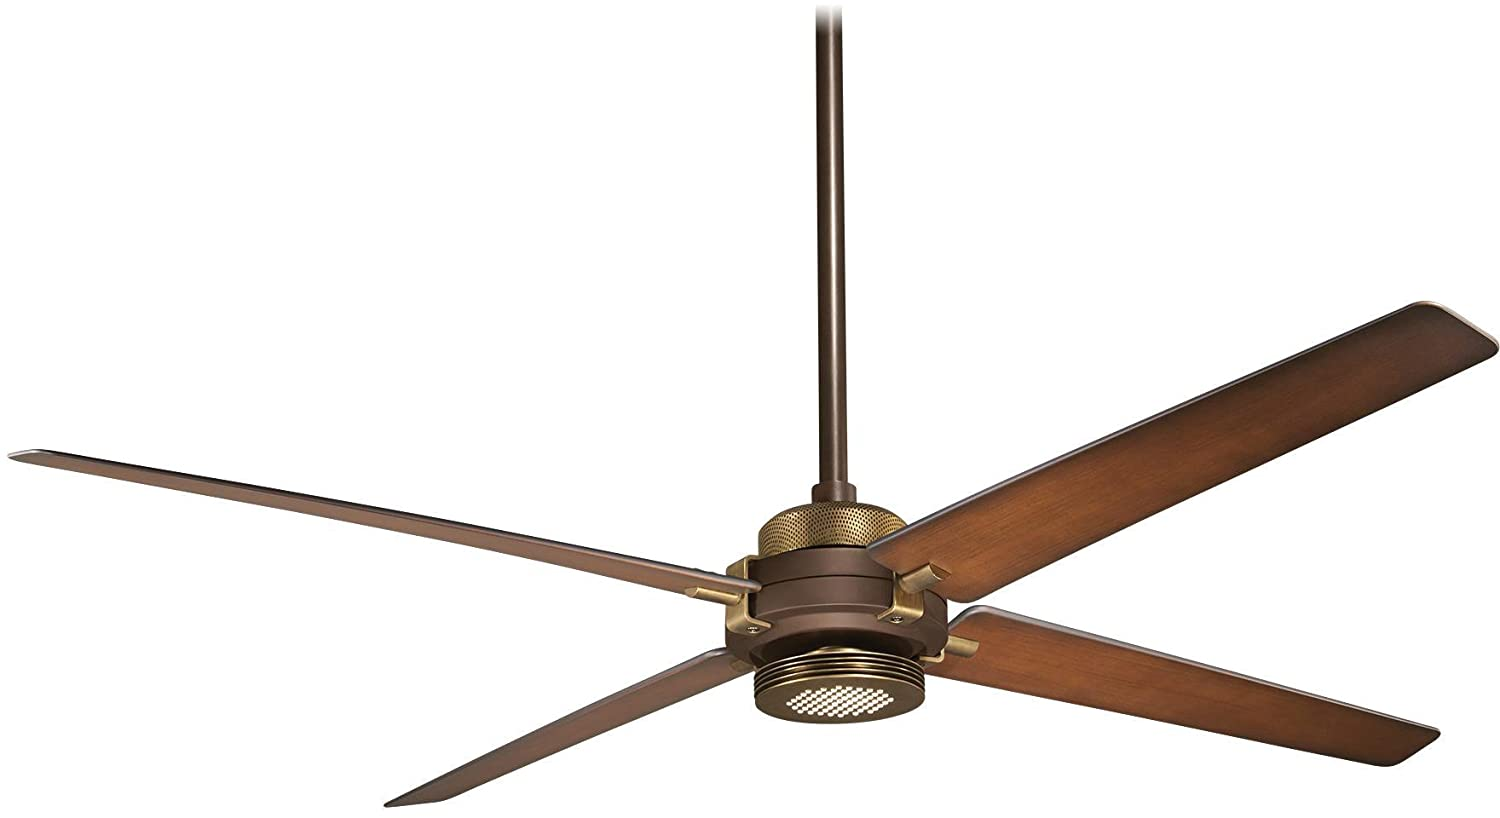 Minka-Aire F726-ORB AB, Spectre Oil-Rubbed Bronze 60 Ceiling Fan w Light Remote Control